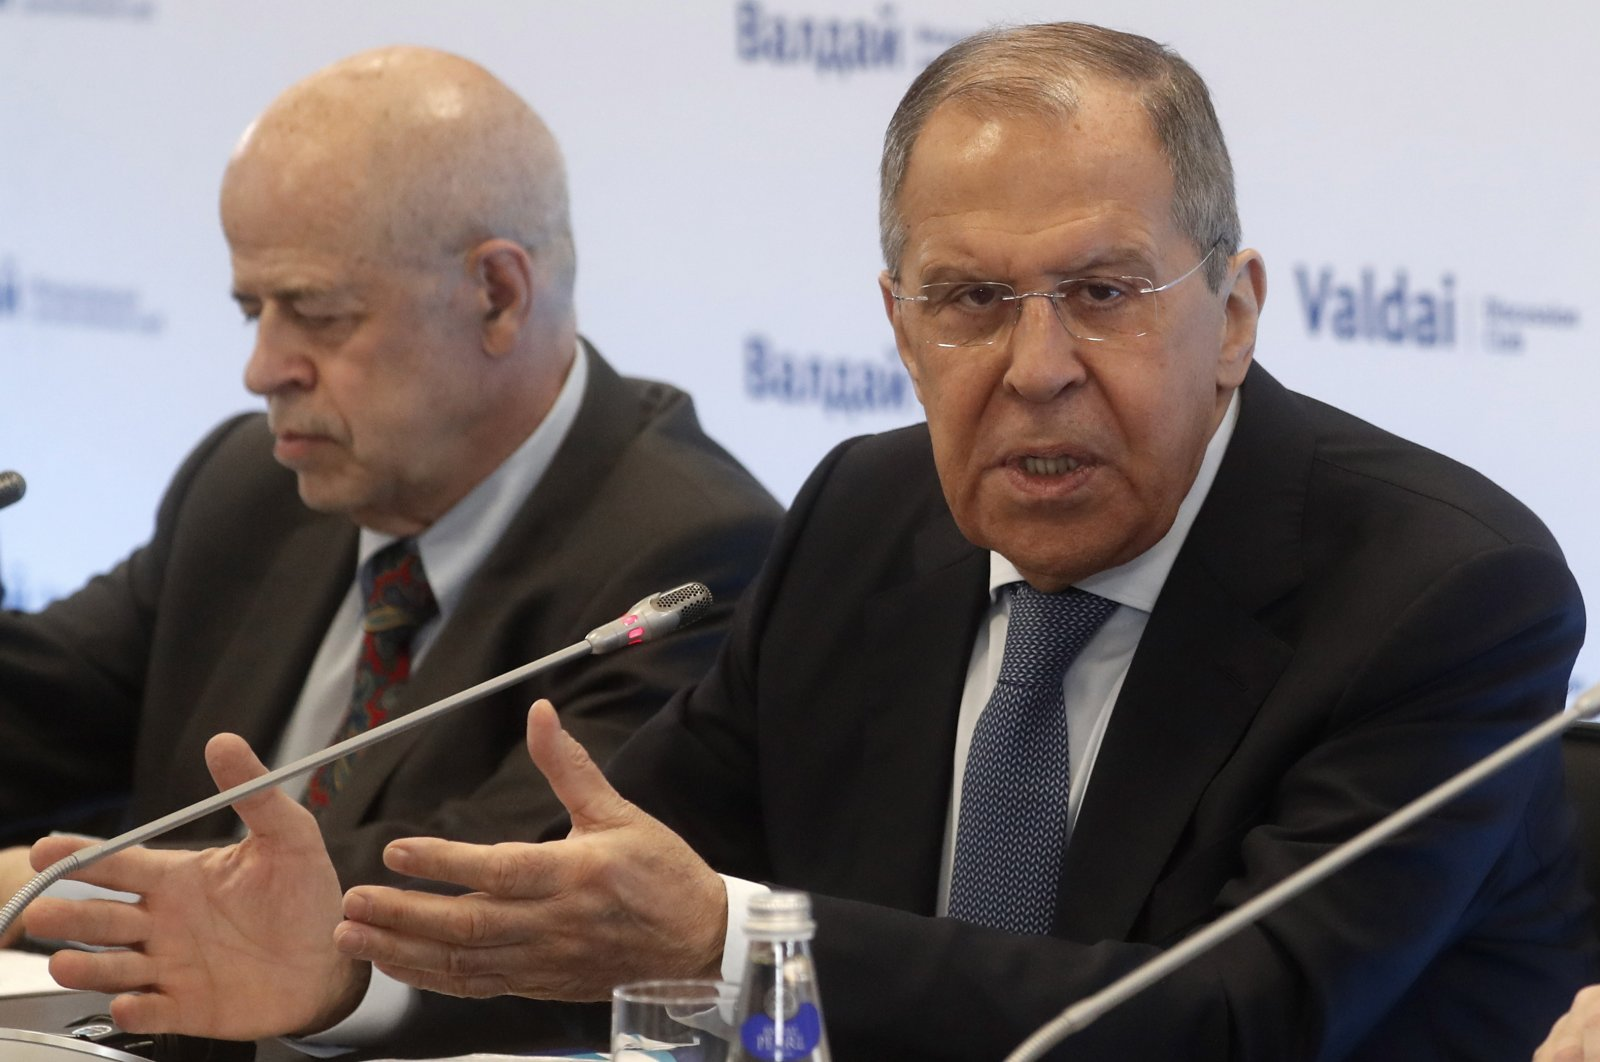 Russian Foreign Minister Sergey Lavrov (R) attends a special session during the Middle East Conference of the Valdai Discussion Club in Moscow, Russia, March 31, 2021. (EPA Photo)